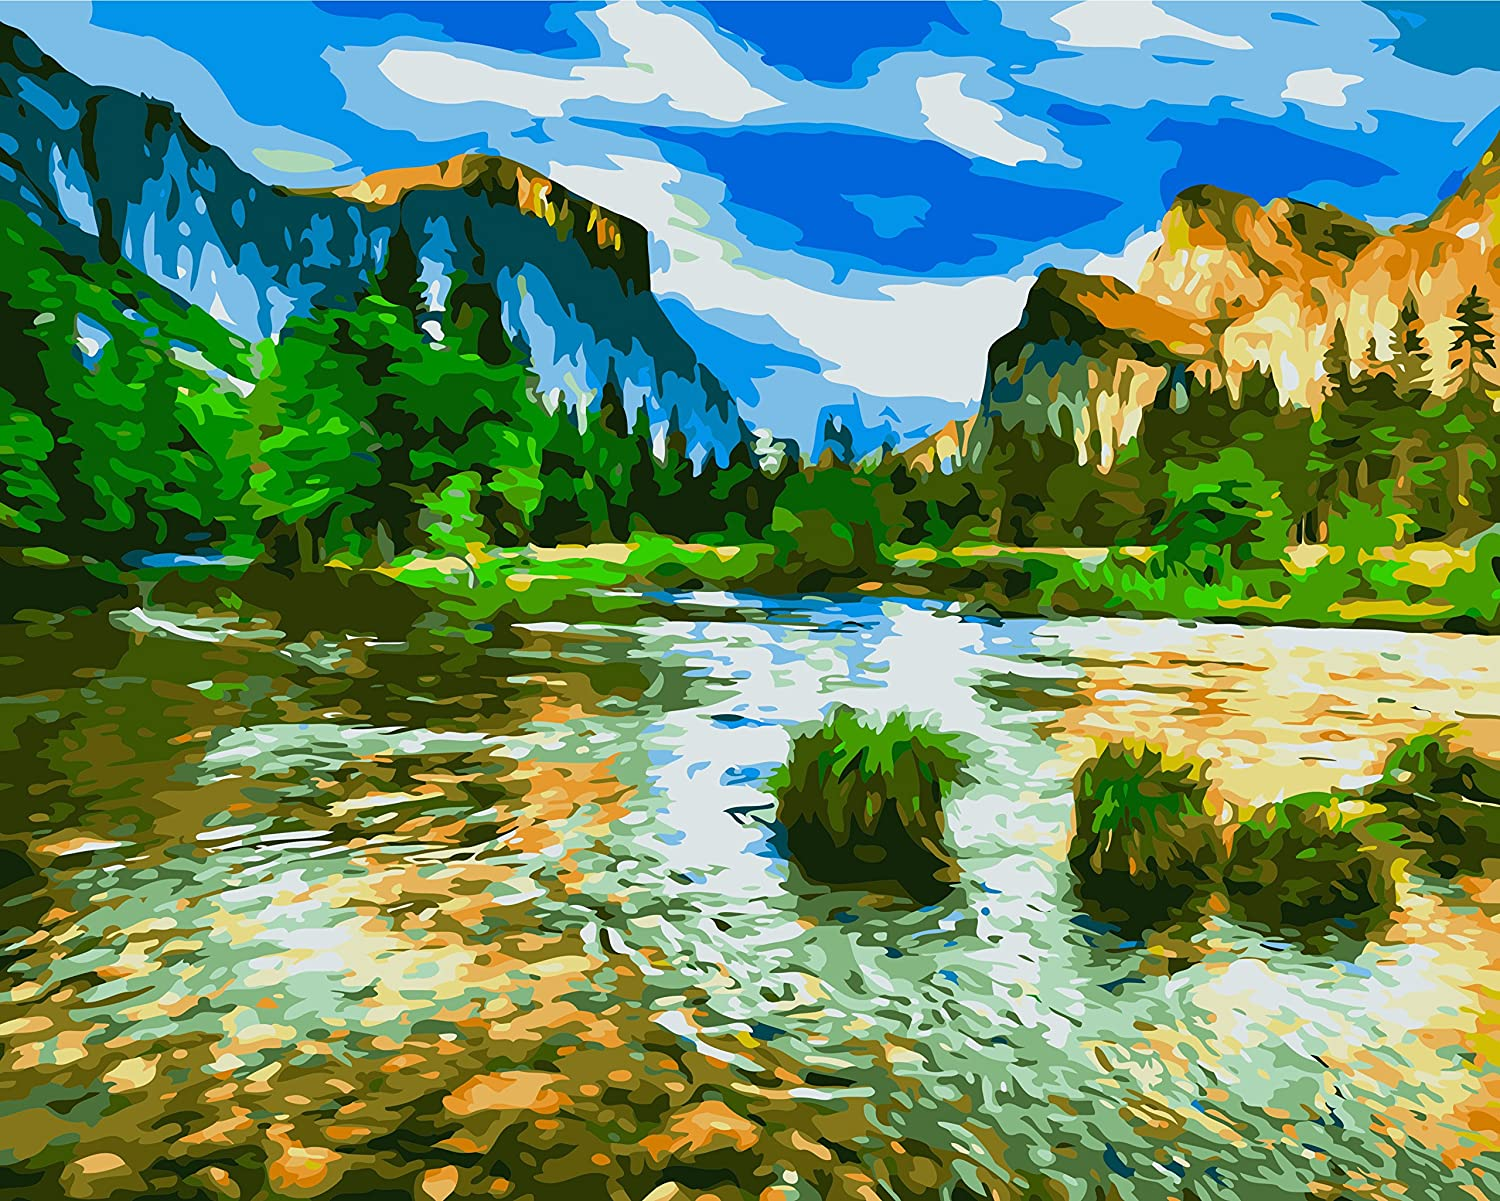 Paint by Numbers for Adults, Yosemite Half Dome and River, Framed, 16X20 inches